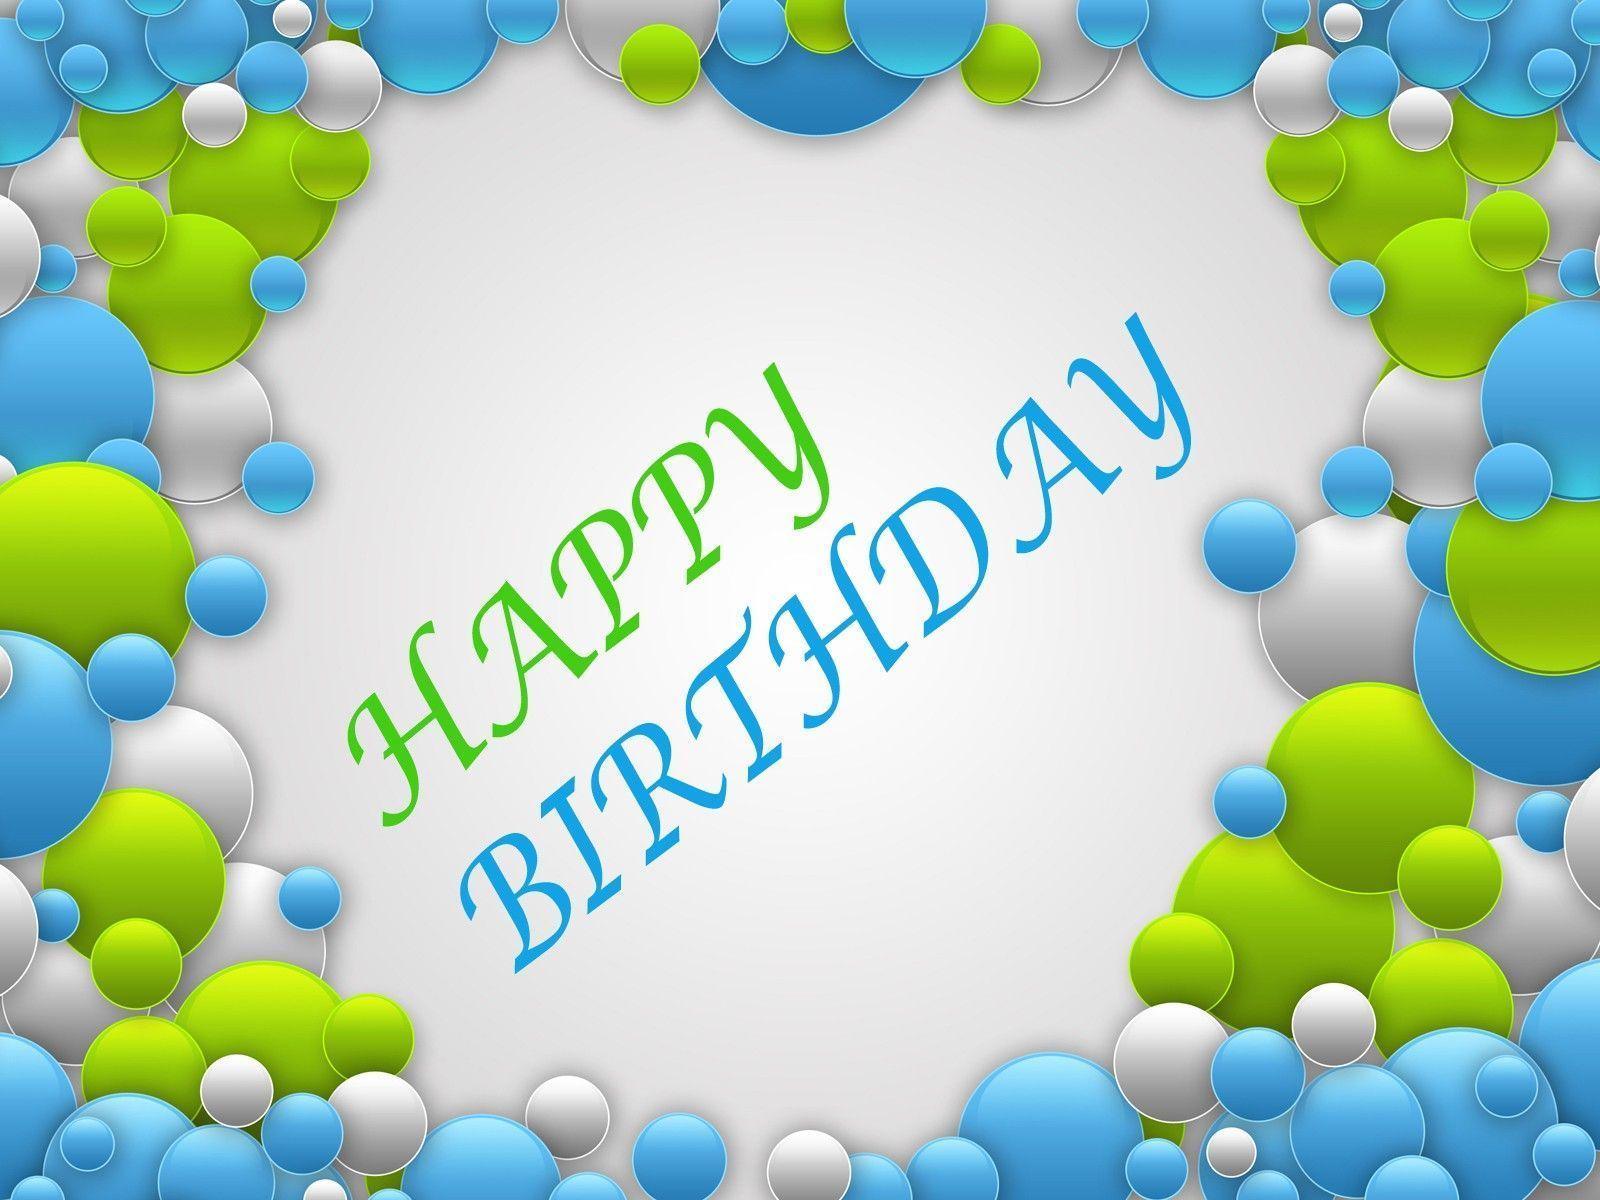 HD Wallpaper Happy Birthday Free Hd Wallpaper Free Happy Birthday ...